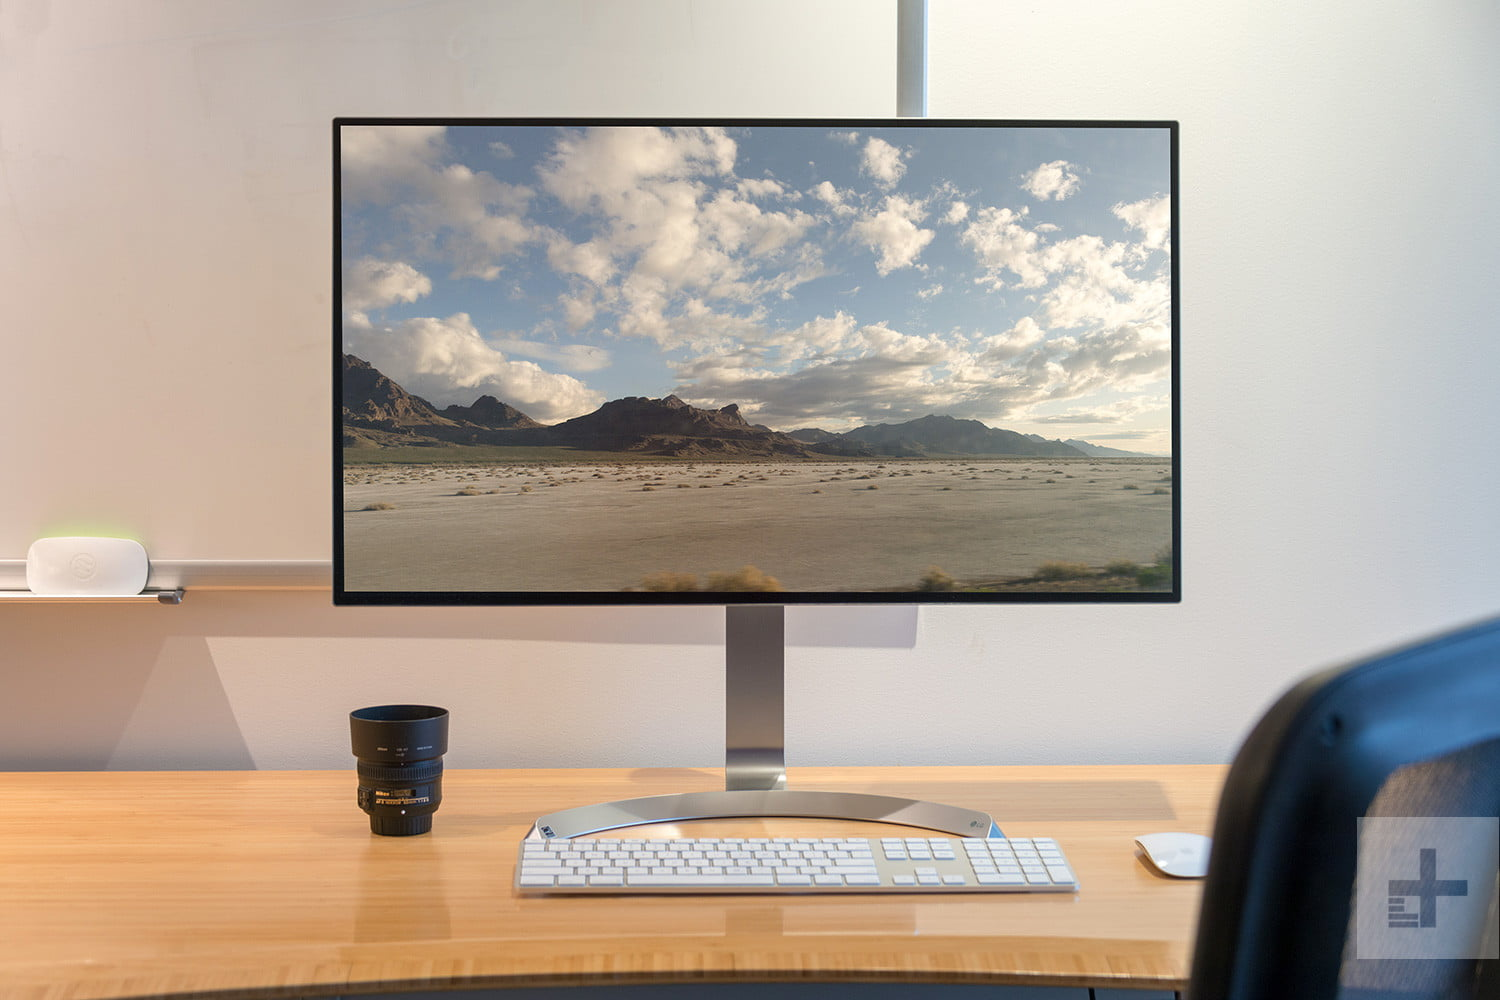 LG 32UD99-W Review | 4K Monitor with HDR | Digital Trends